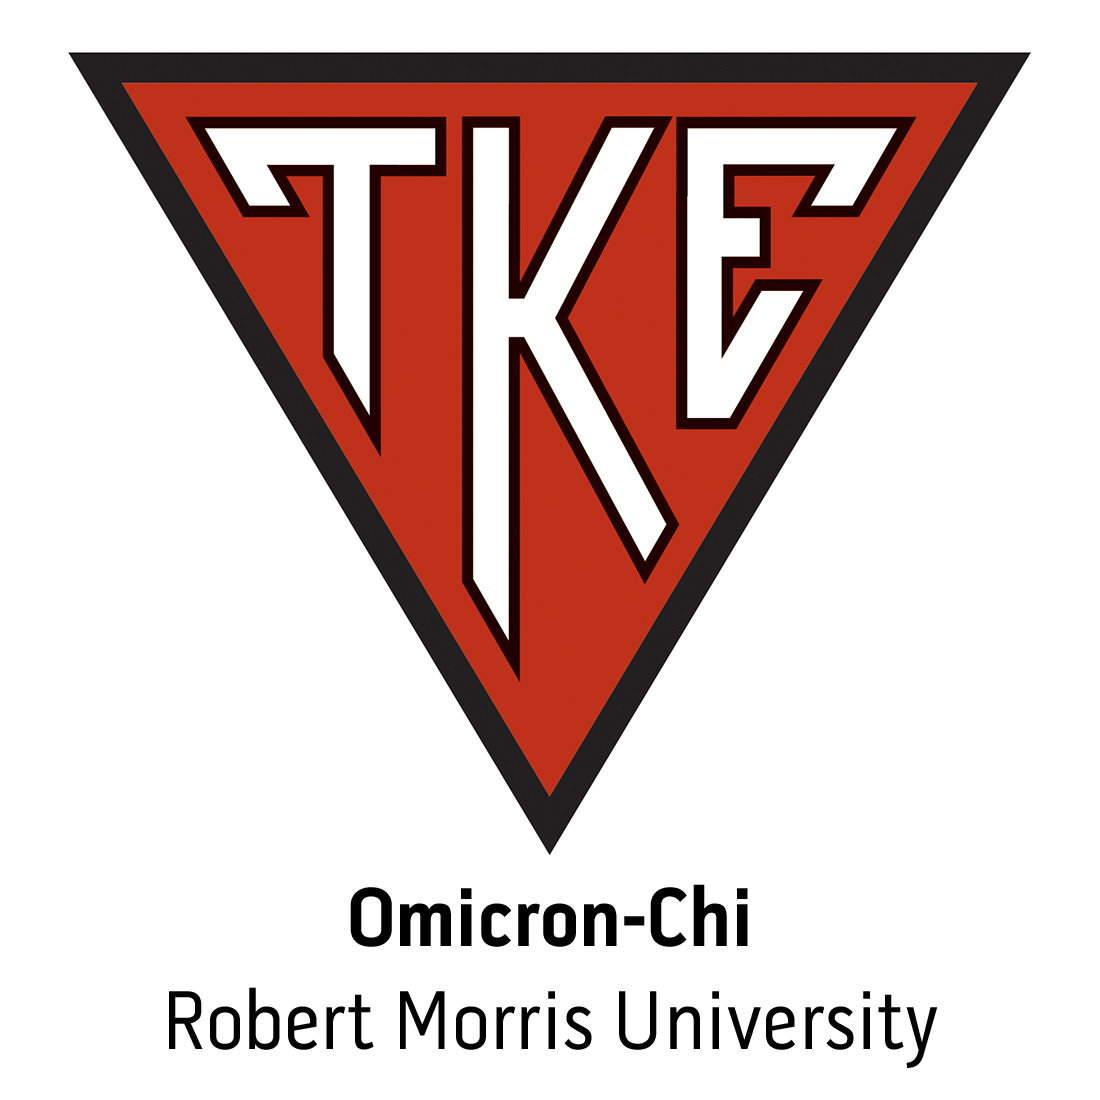 Omicron-Chi Chapter at Robert Morris University